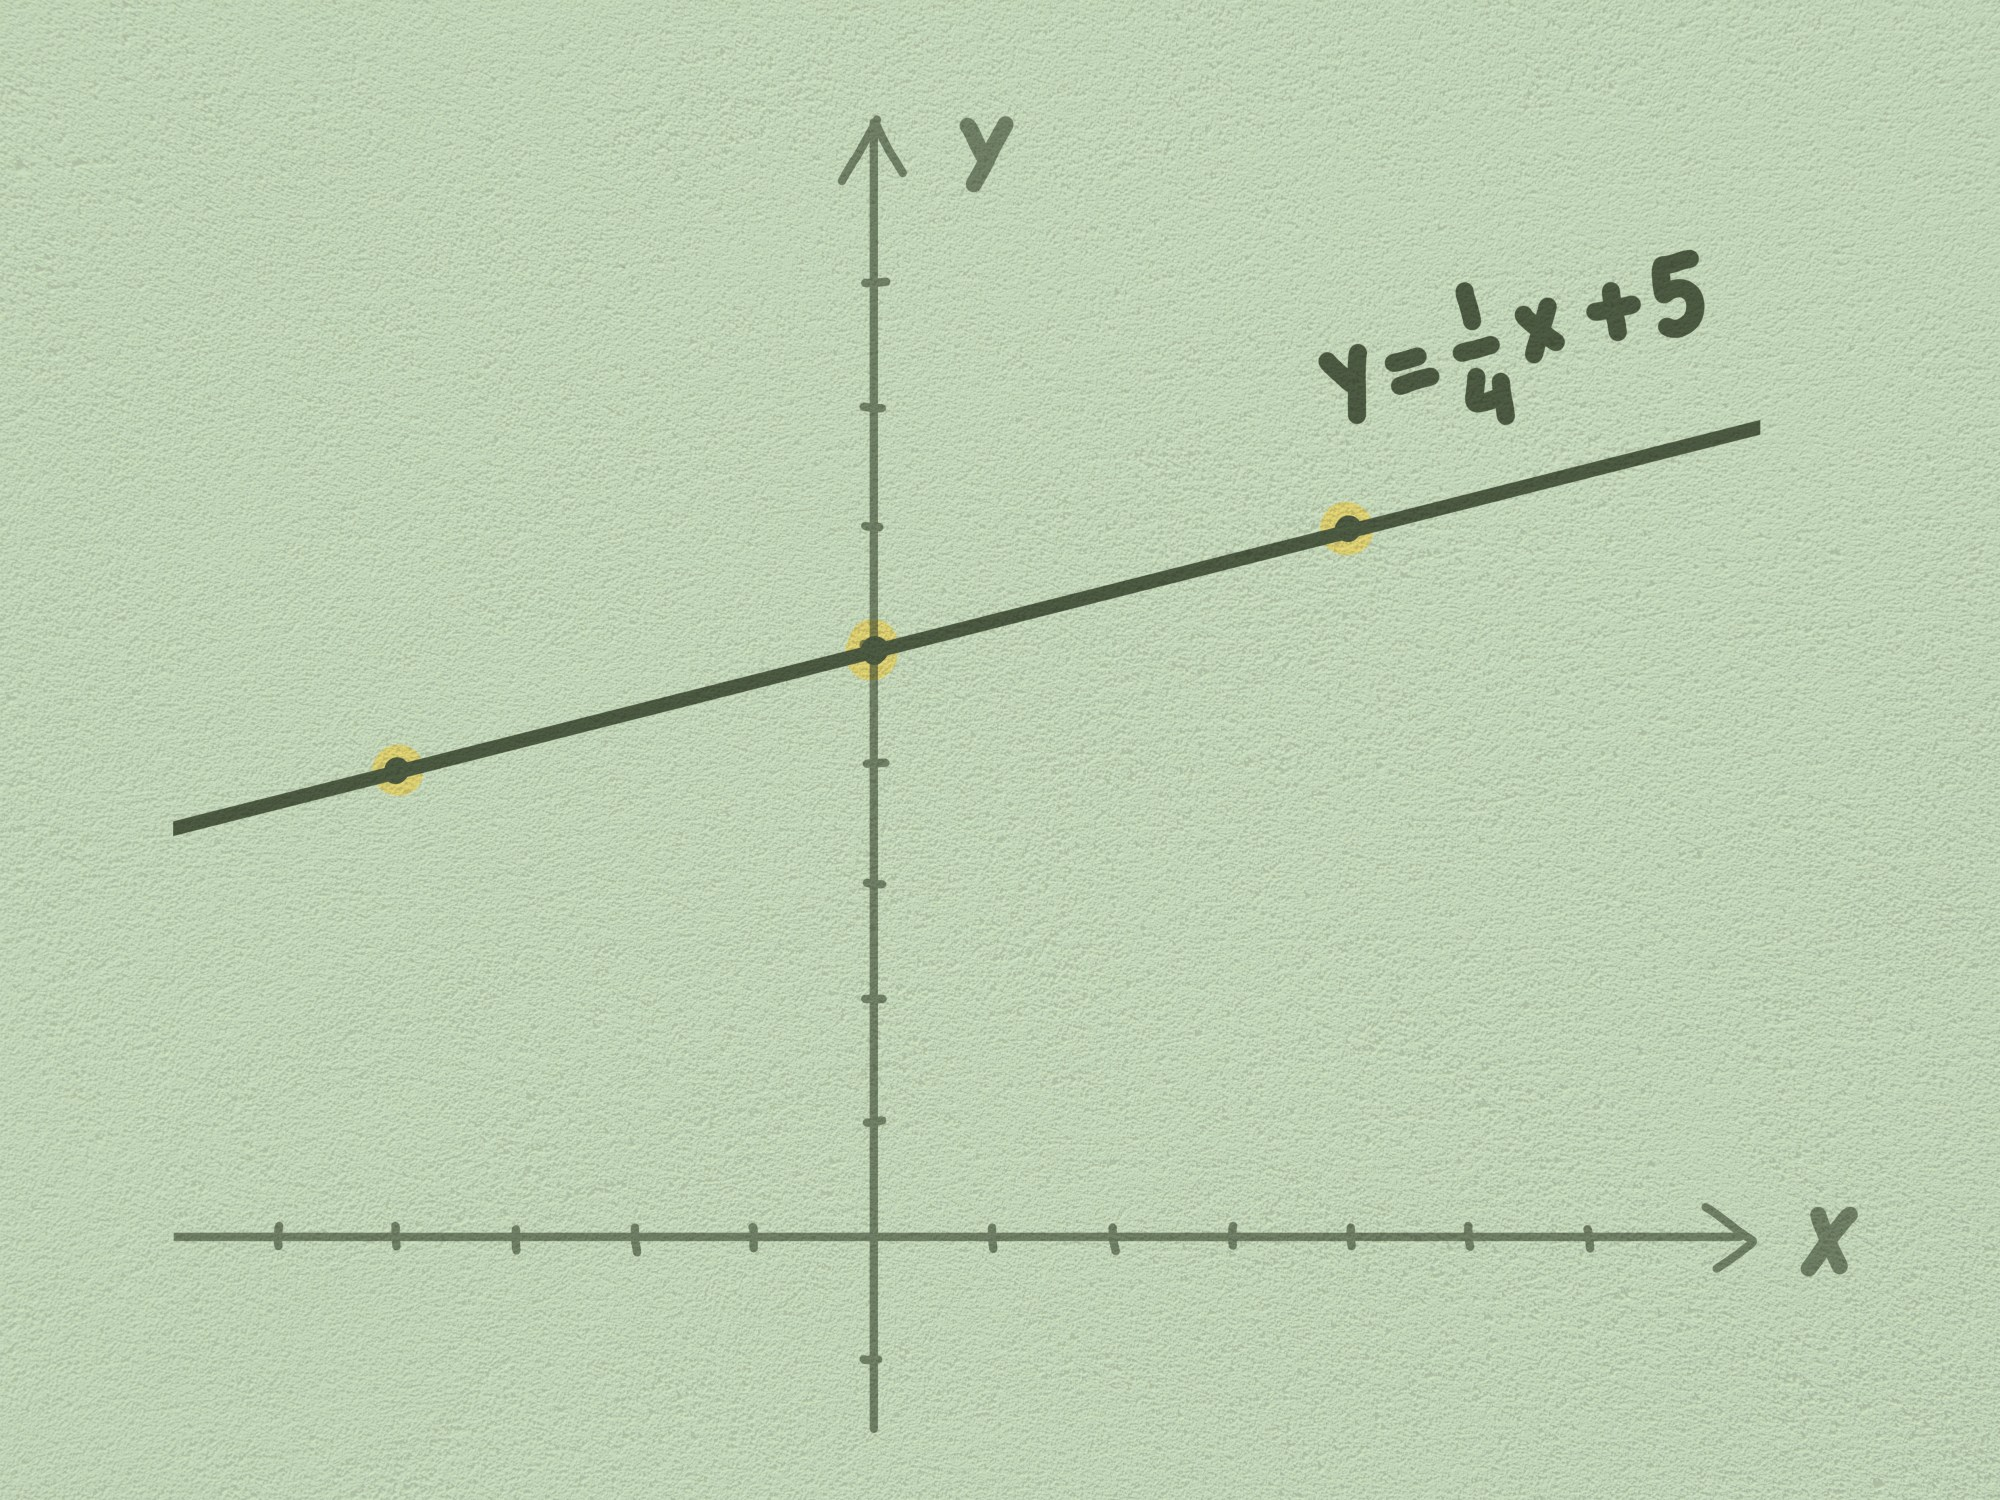 hight resolution of How to Graph Linear Equations: 5 Steps (with Pictures) - wikiHow